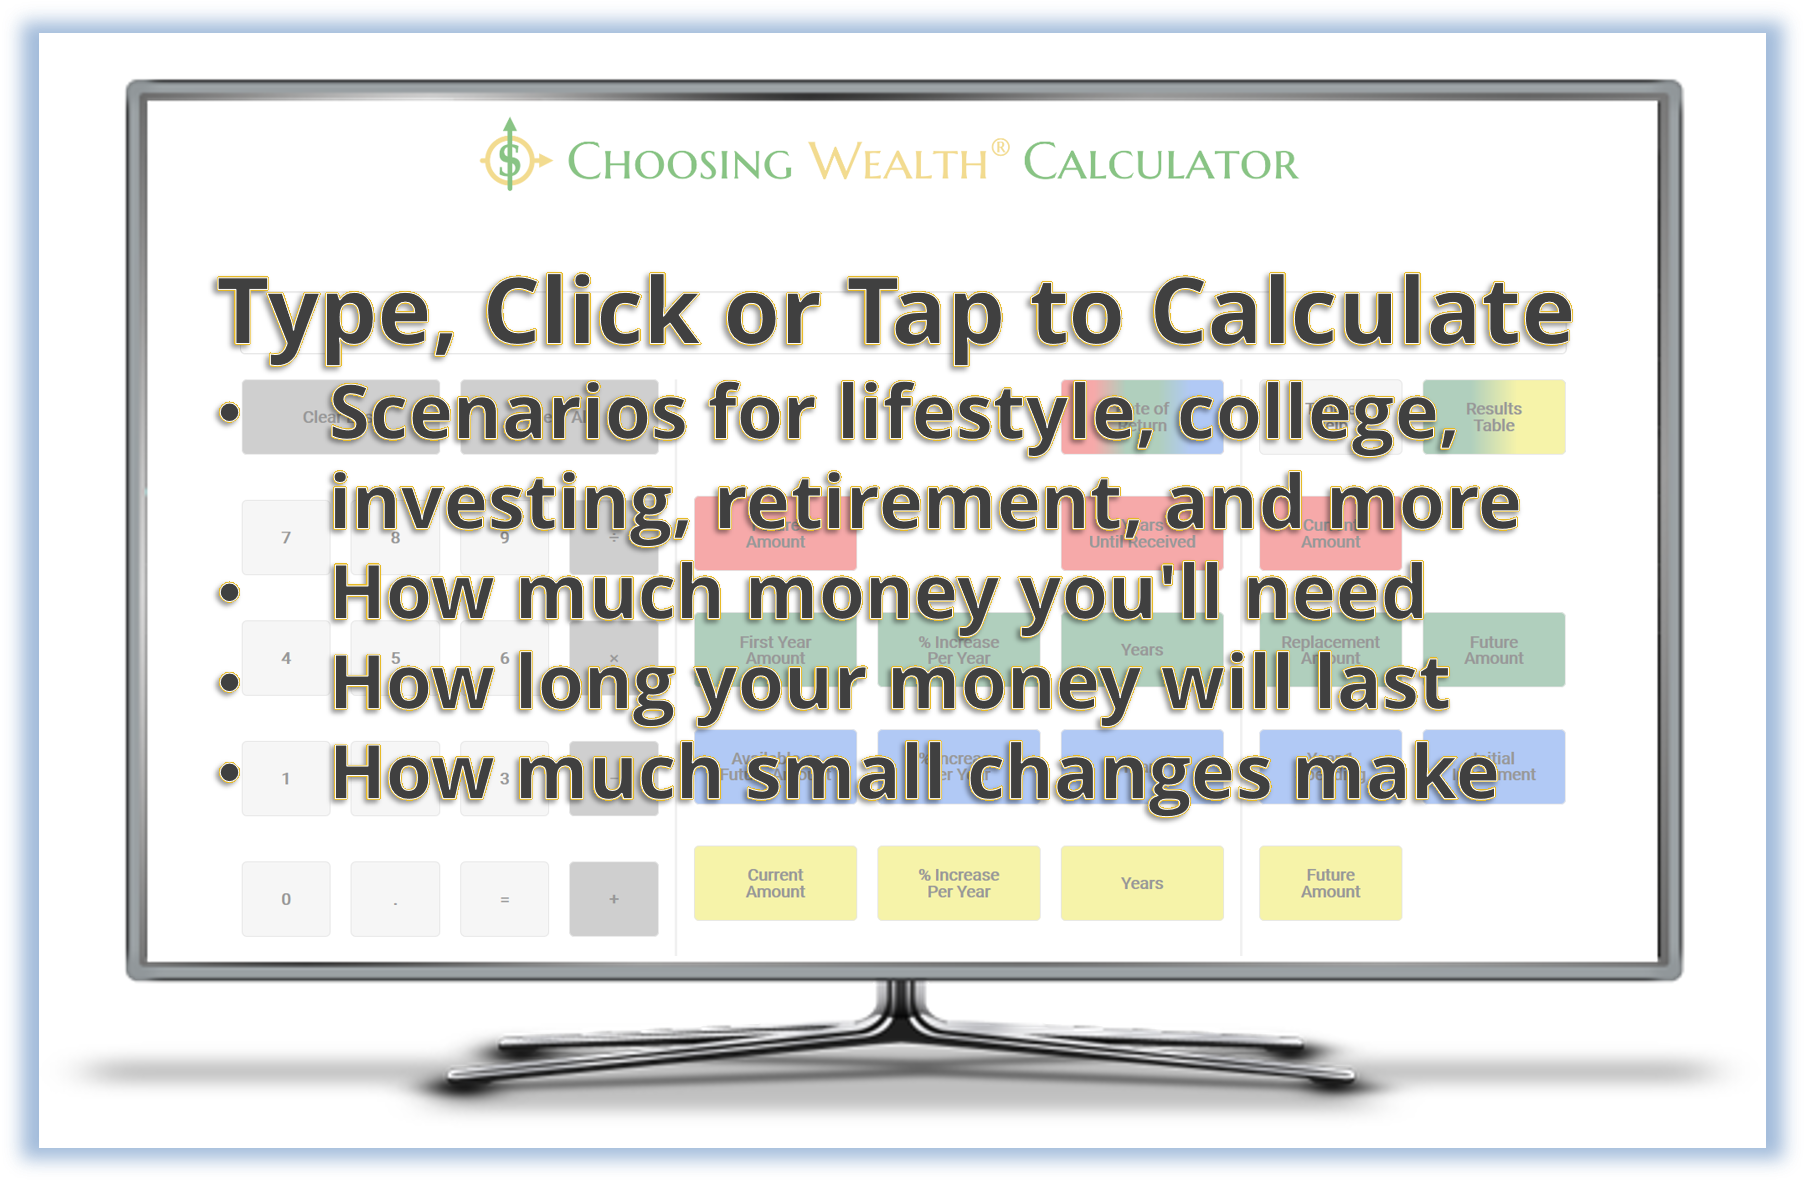 Choosing Wealth® Calculator face with instructional bullets